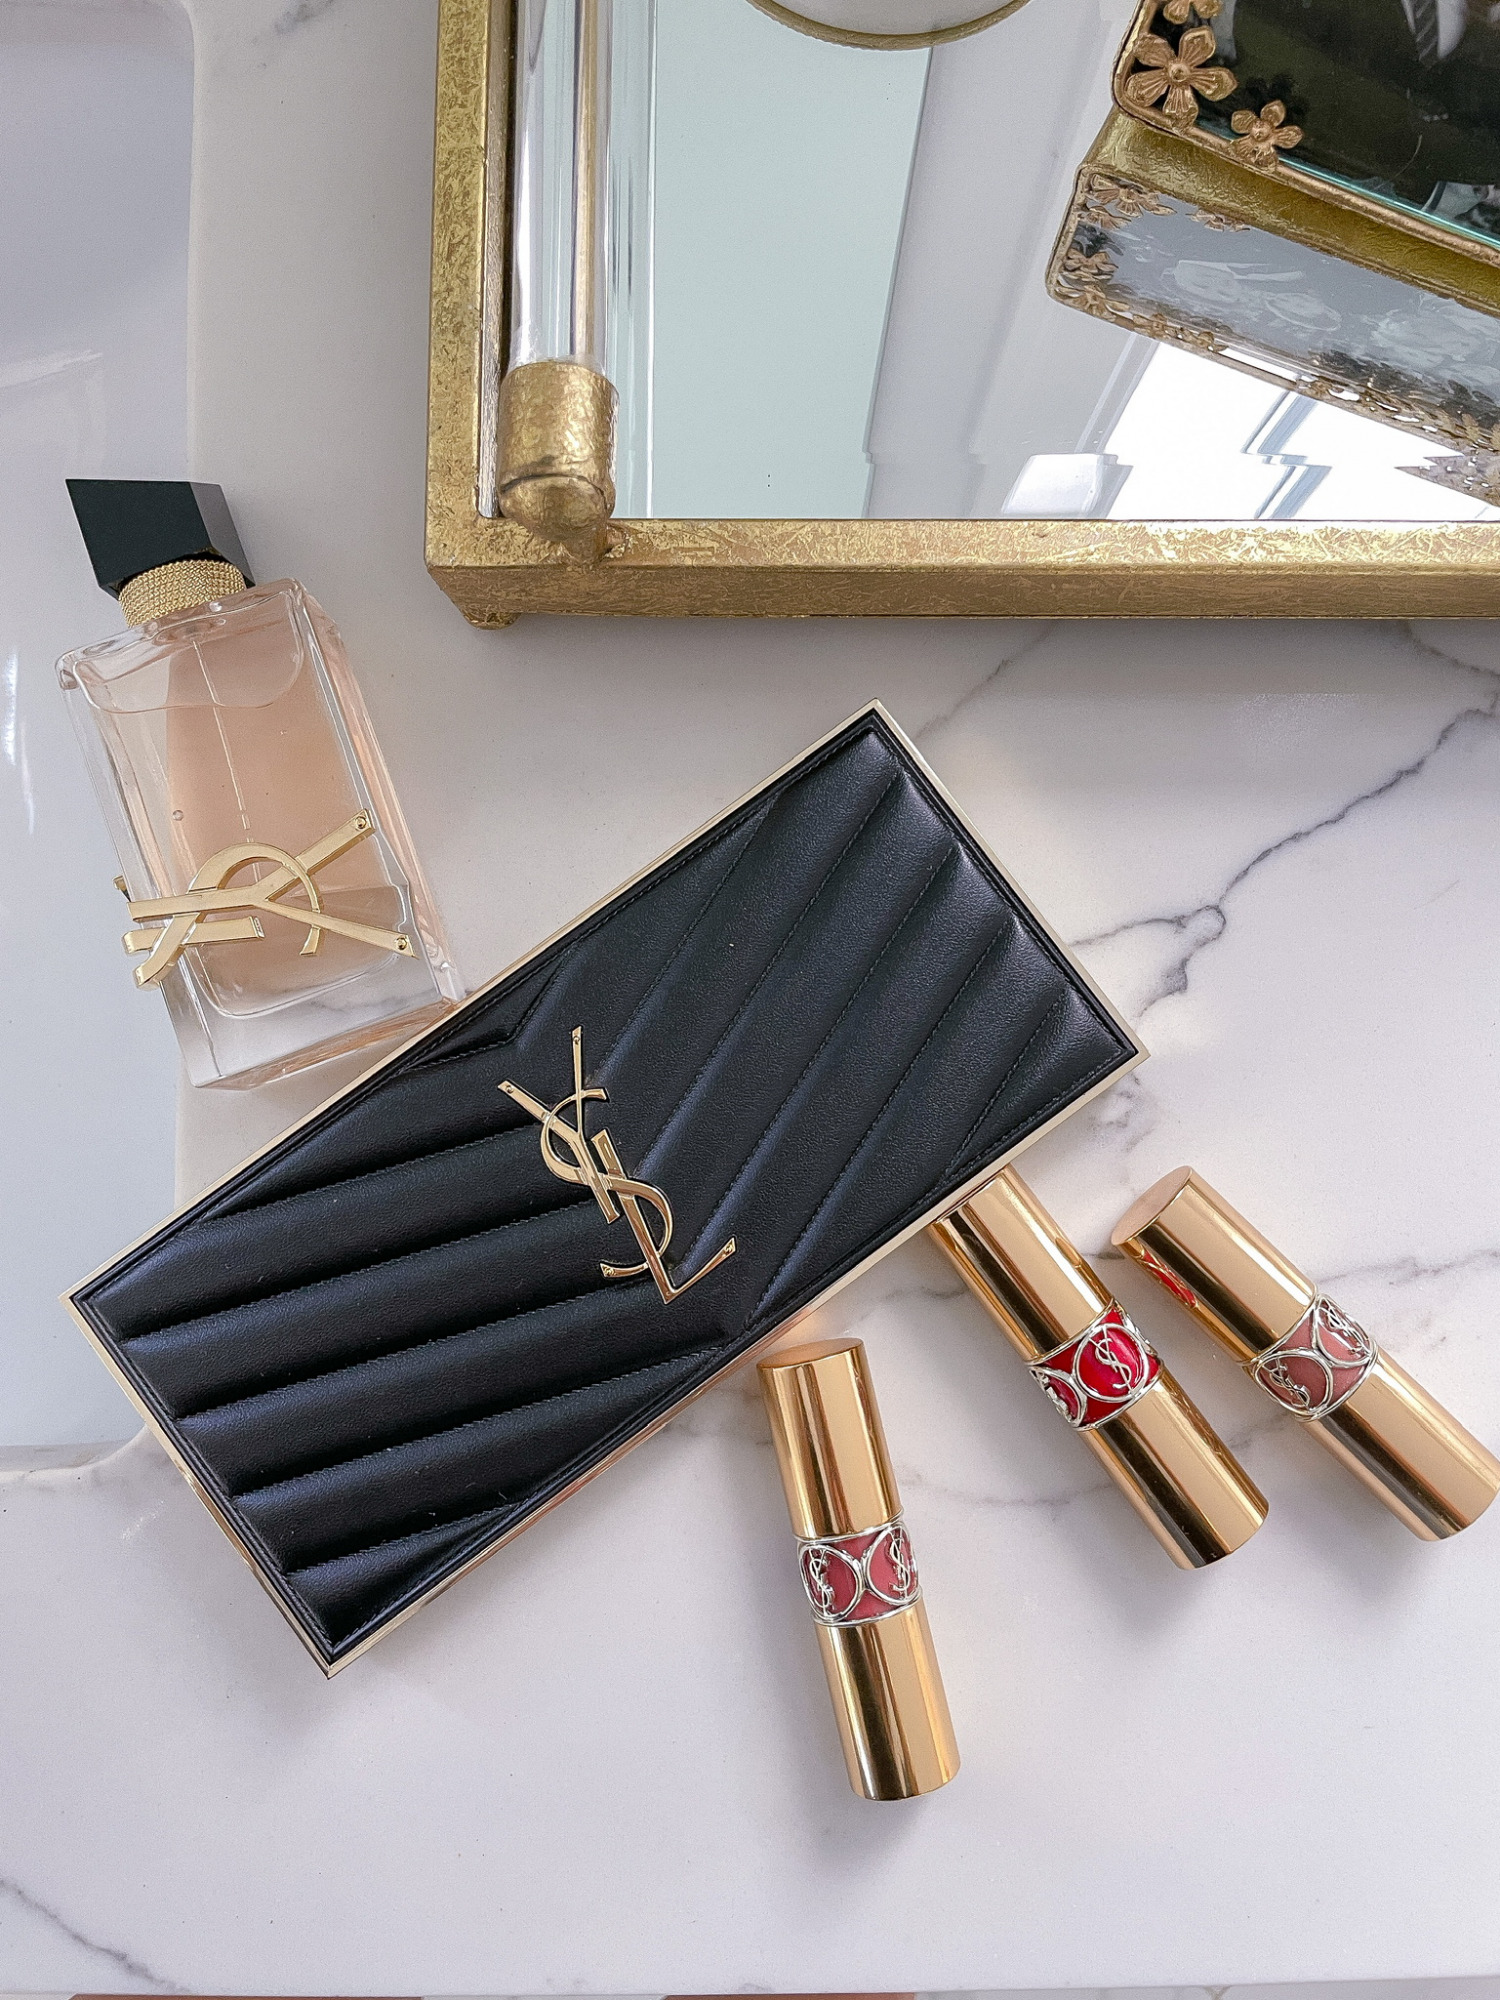 YSL-beaute-review-lipstick-rouge-volupte-shine-summer-lipstick-ltk-day-sale | June Instagram Recap by popular US fashion blog, The Sweetest Thing: image of YSL lipstick.